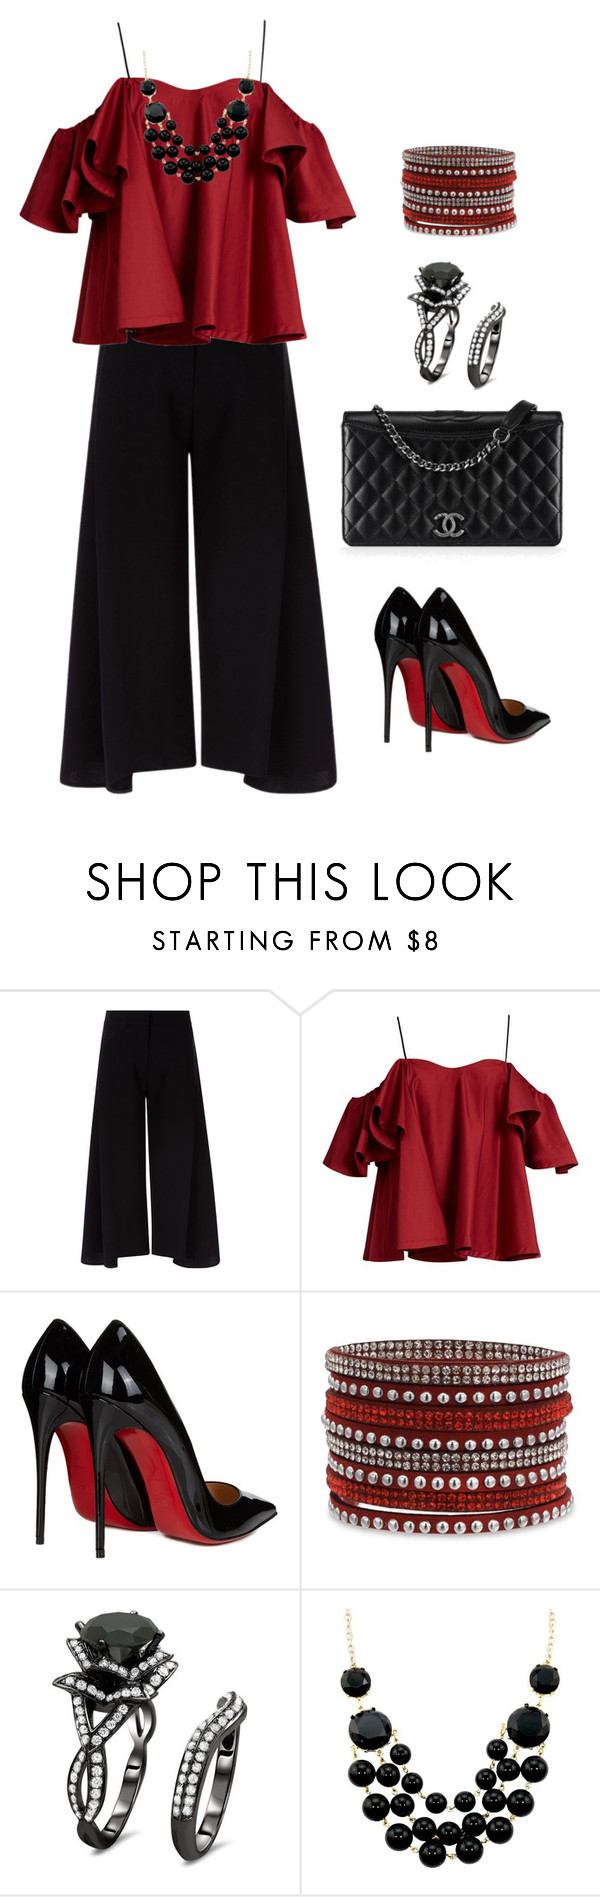 """""""Chic"""" by ebramos ❤ liked on Polyvore featuring Victoria, Victoria Beckham, Anna October, Christian Louboutin and Chanel"""